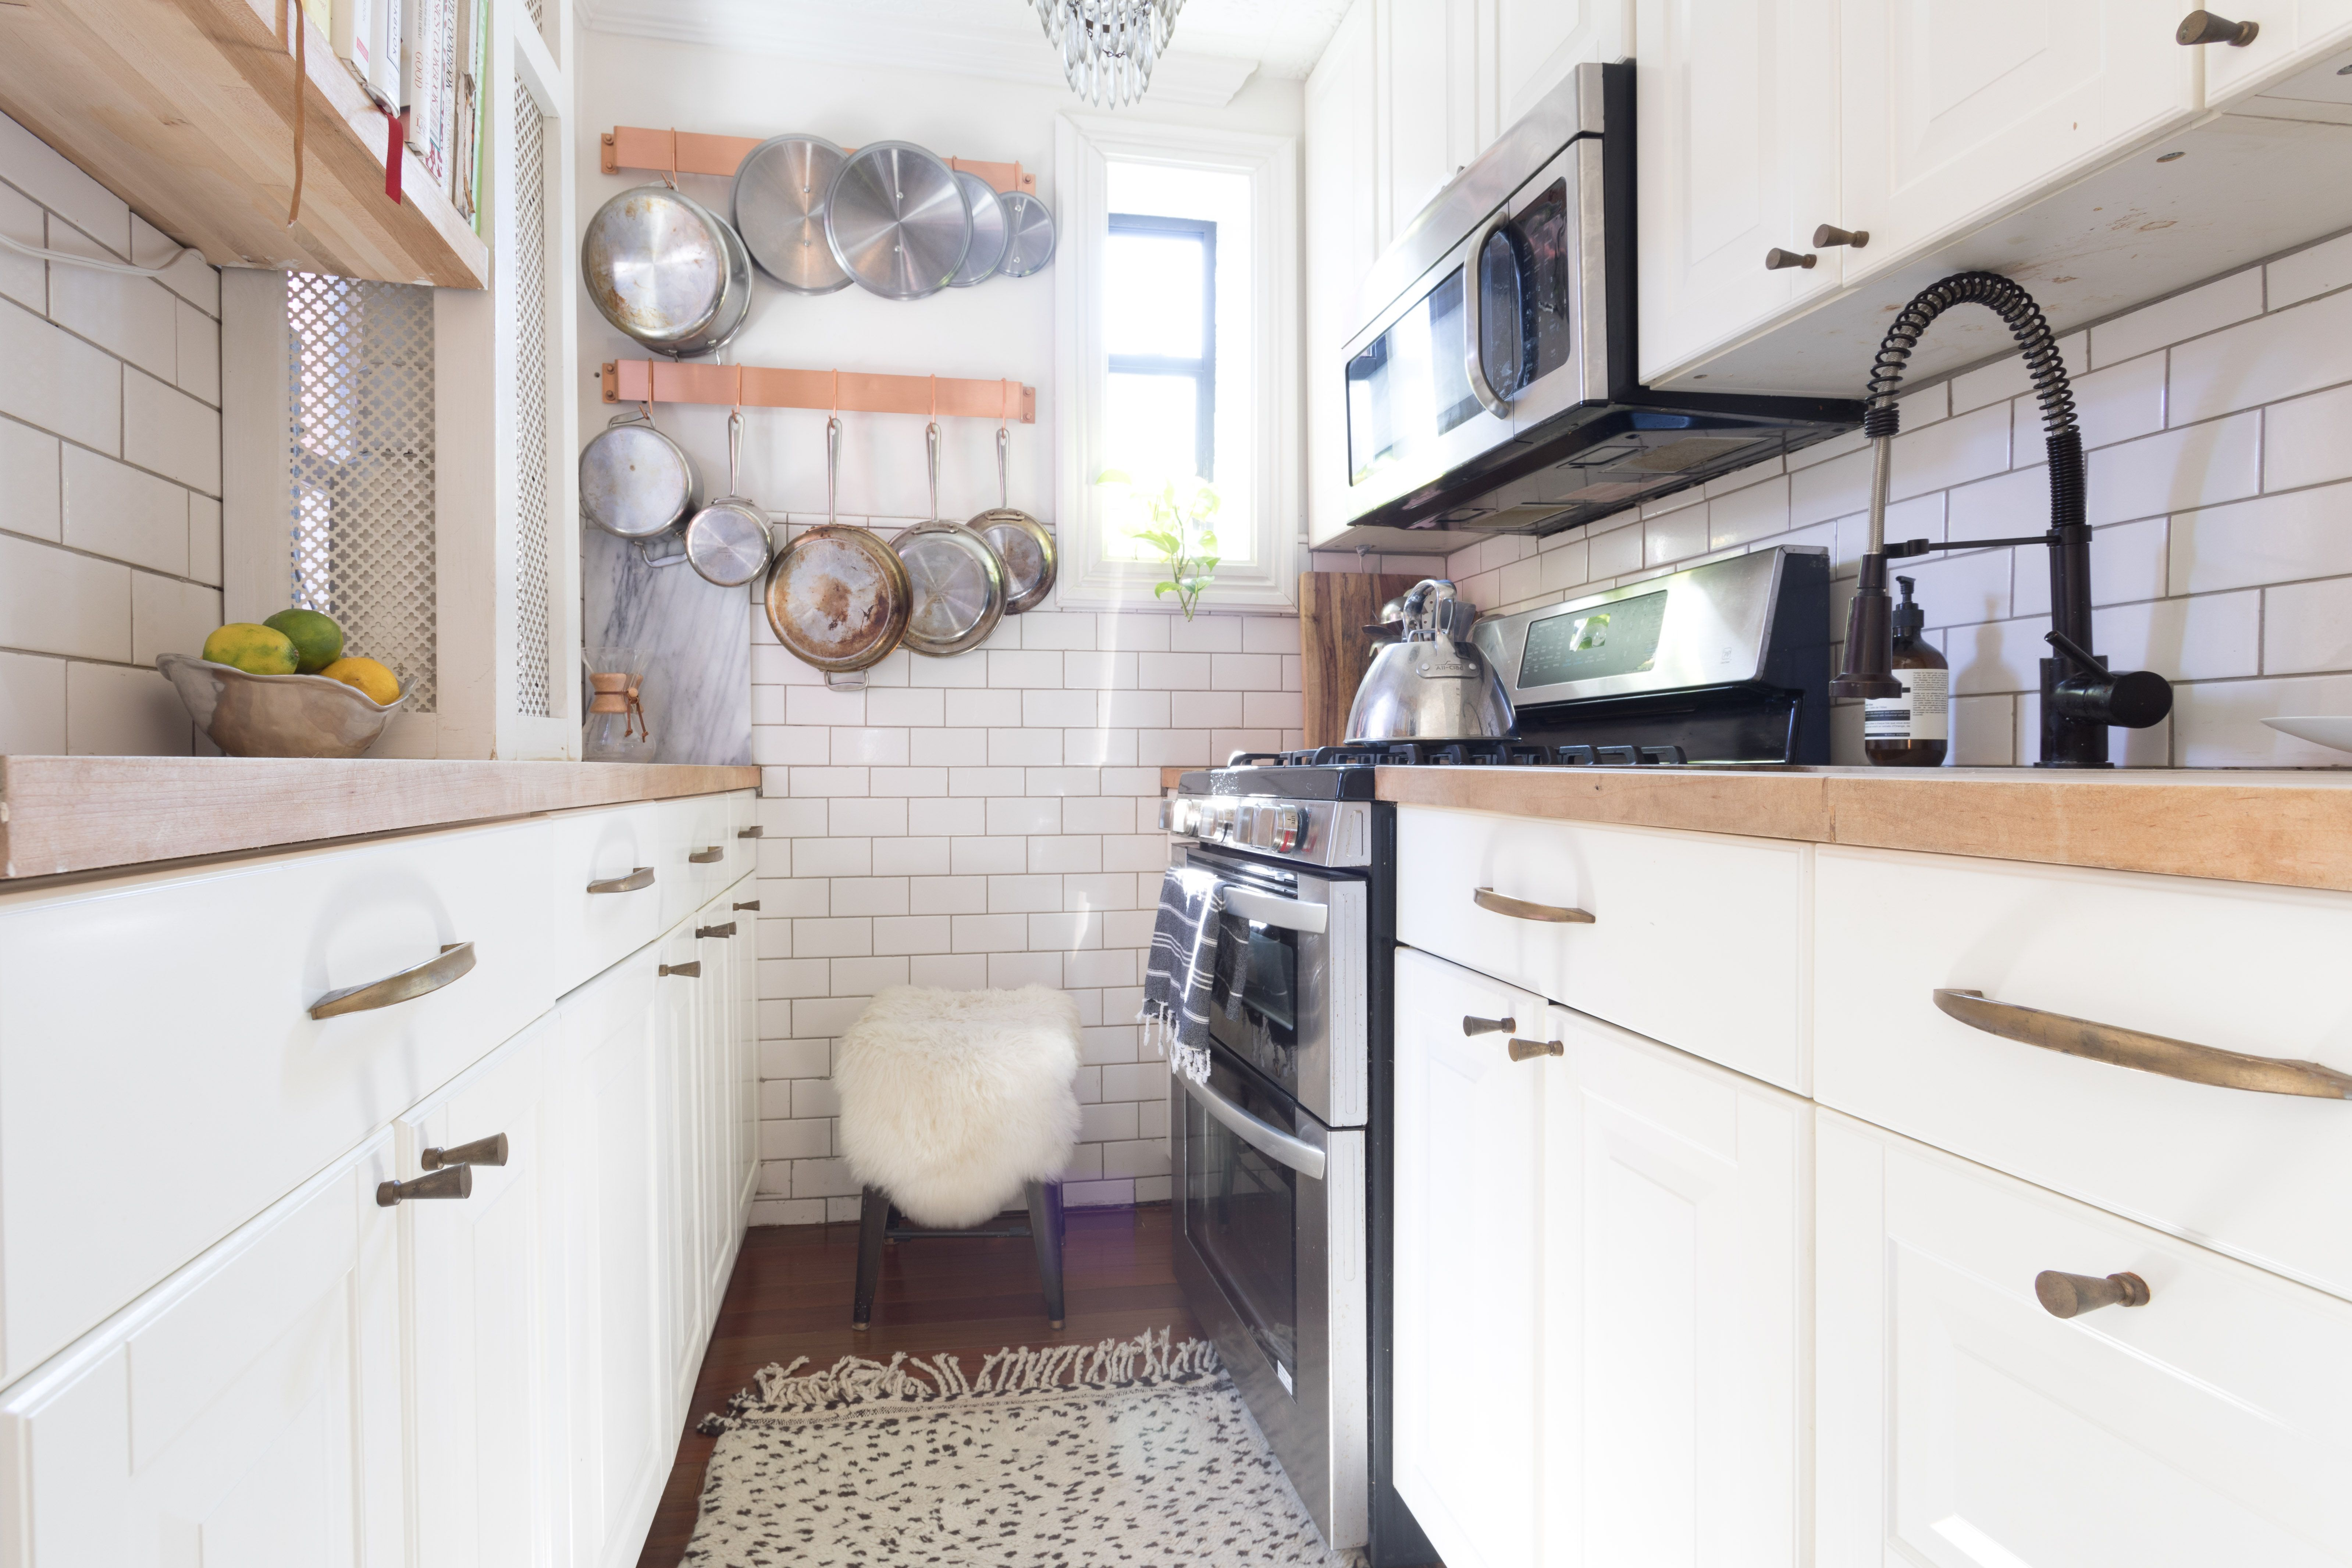 This Kitchen Remodel Feels Much Bigger than 38 Square Feet ...